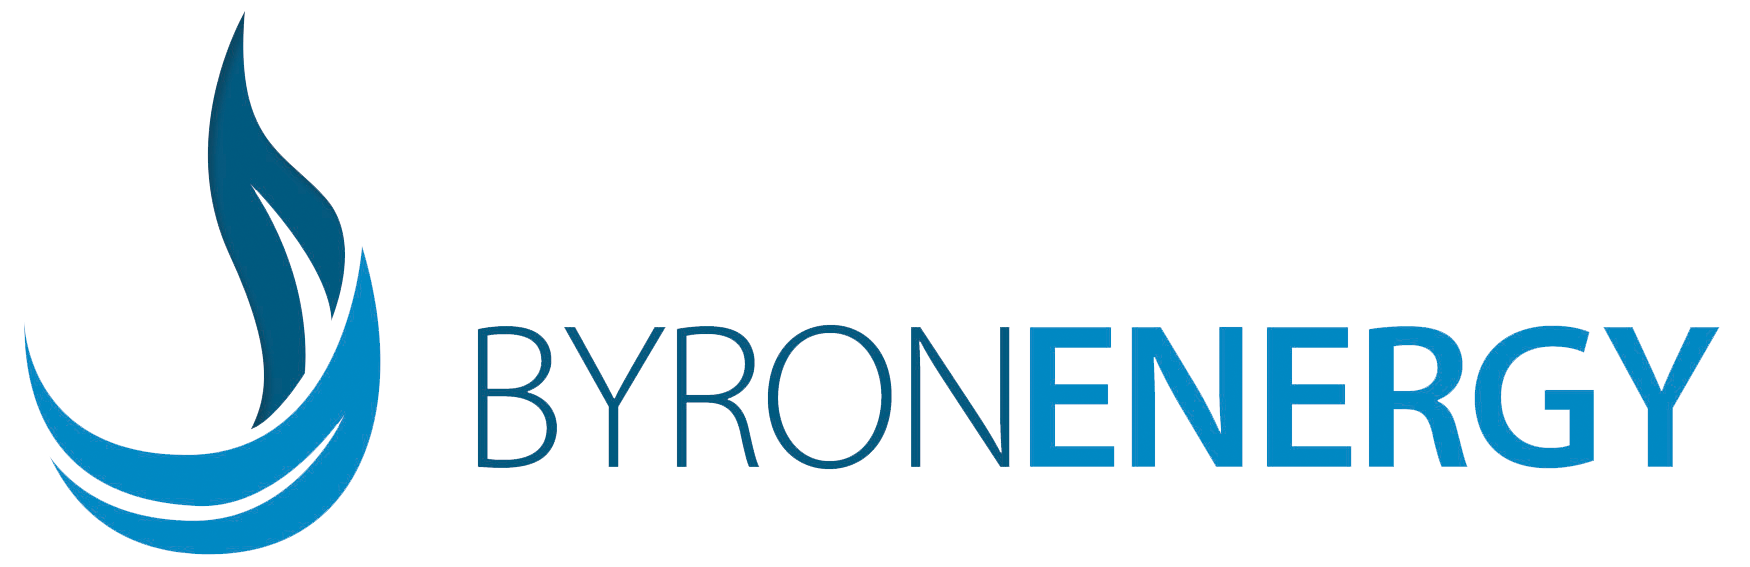 Byron Energy Ltd